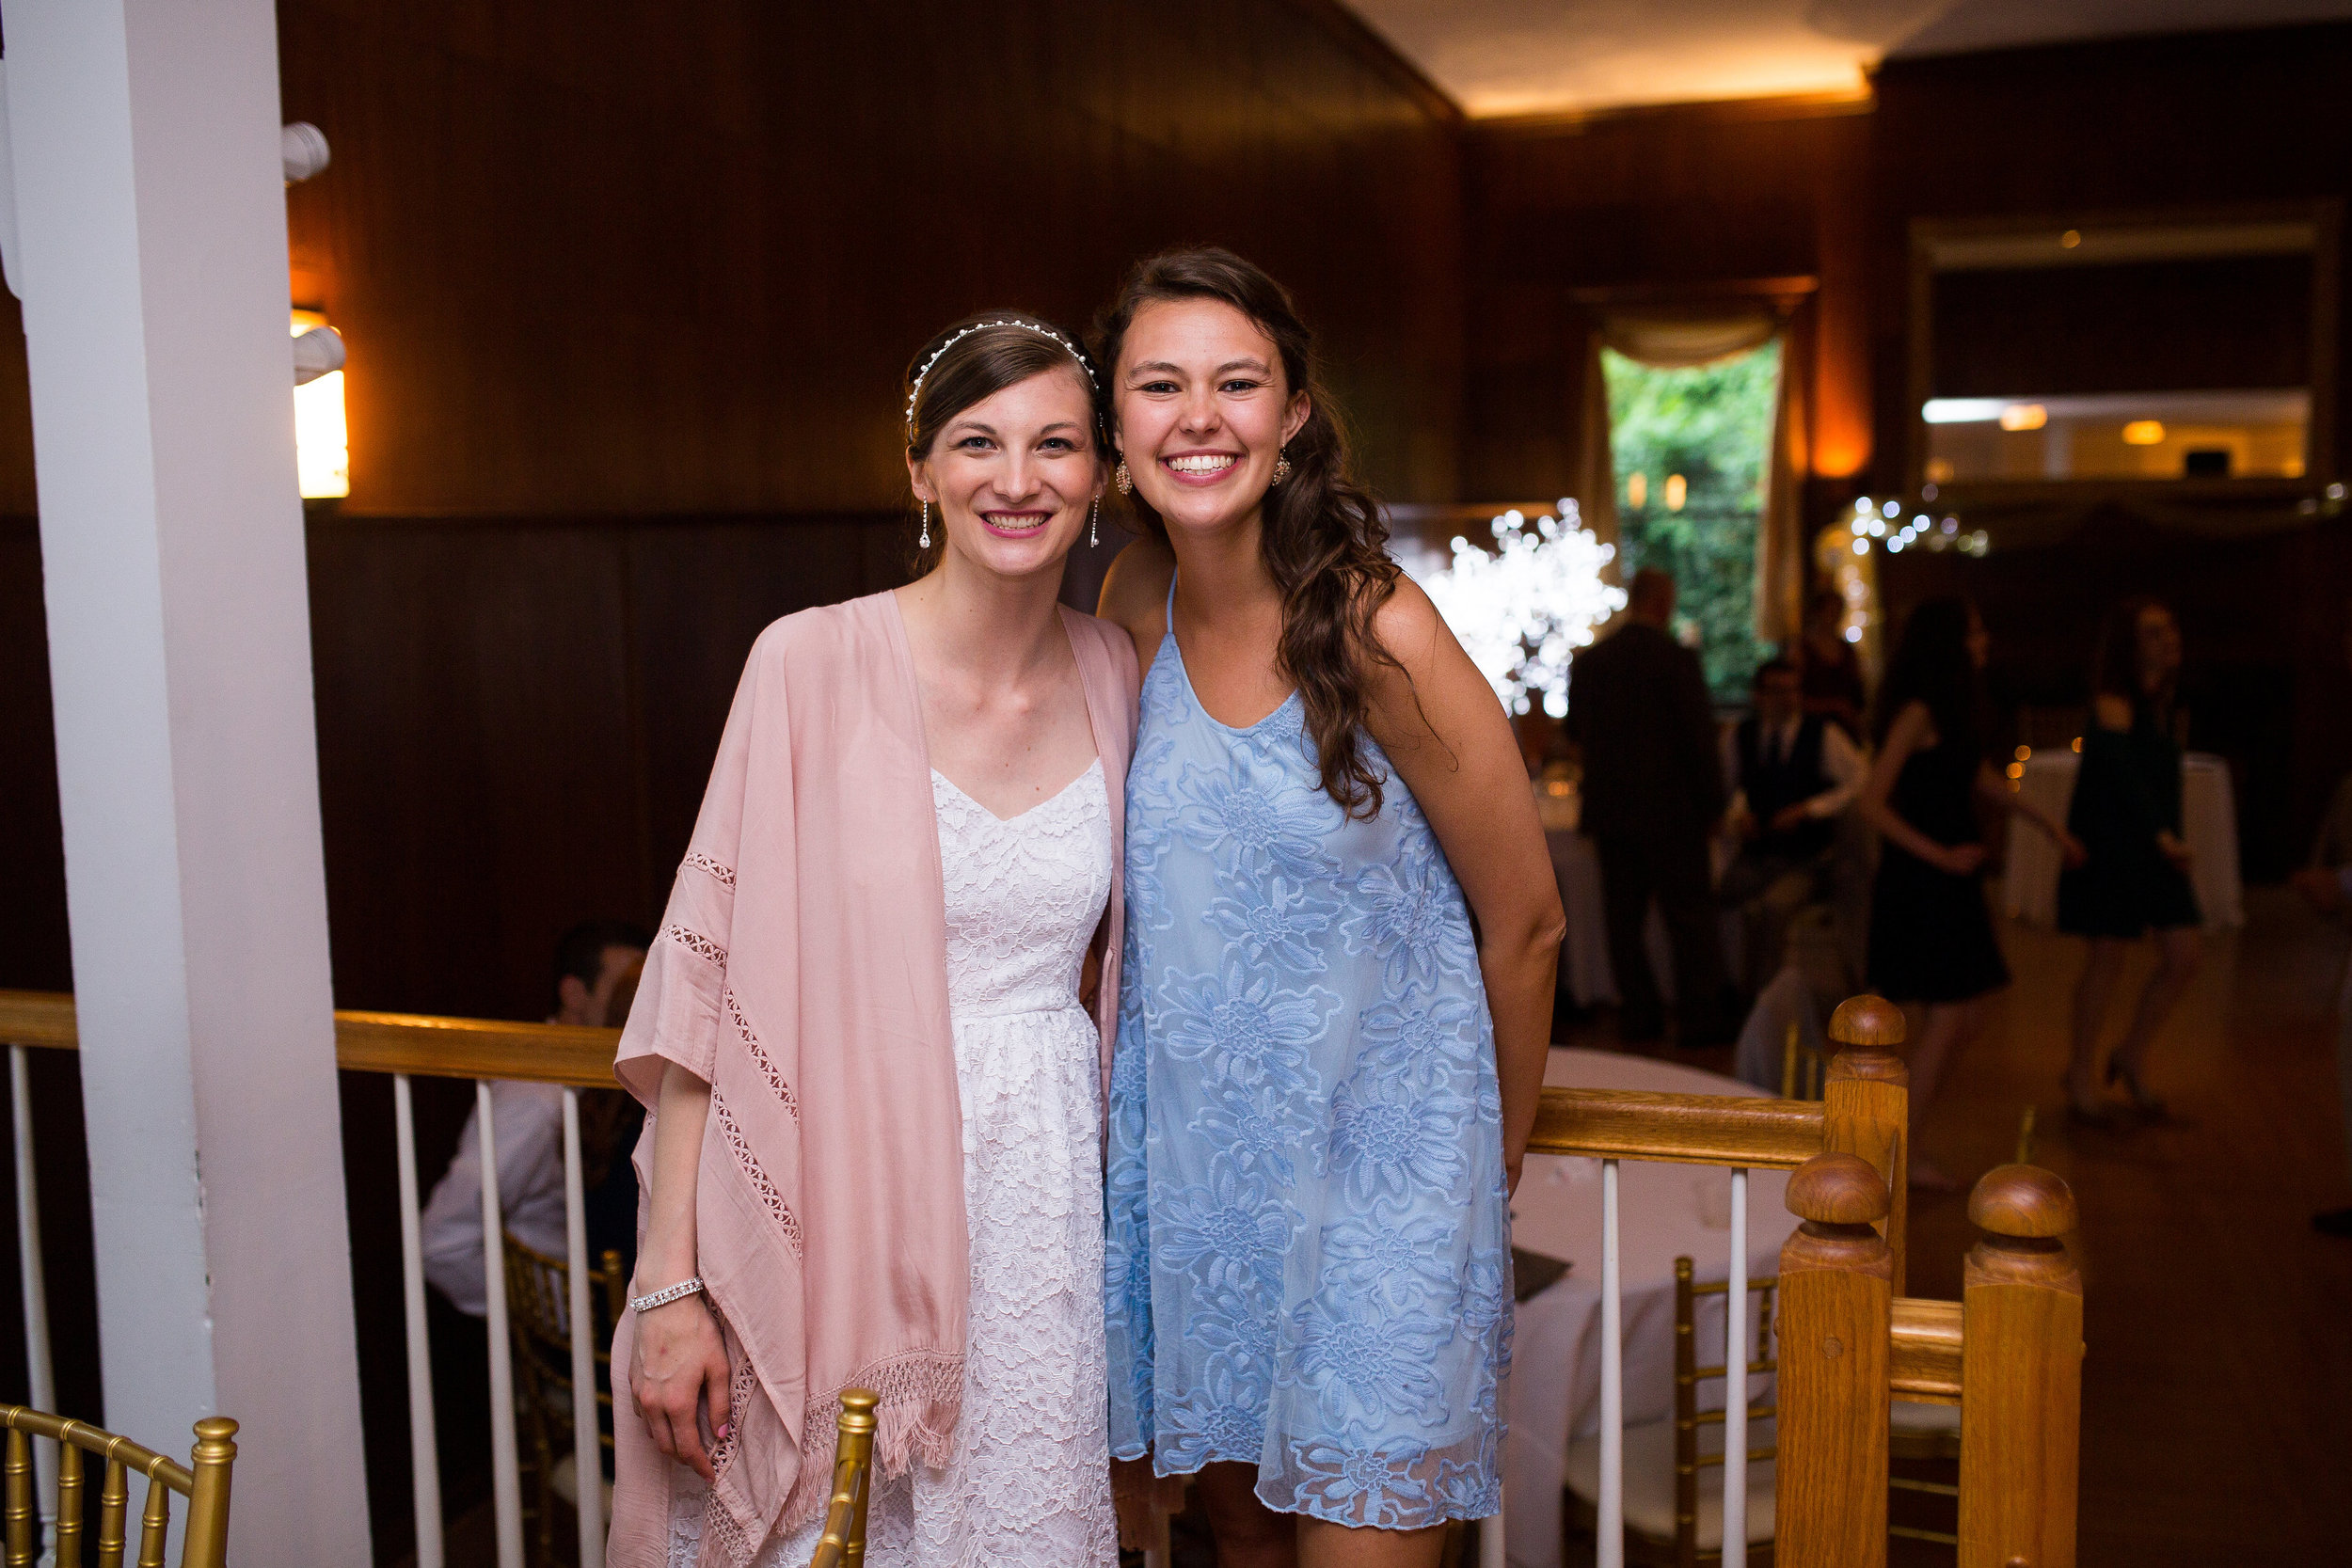 Ruth & me! Photo by Kharis Photography